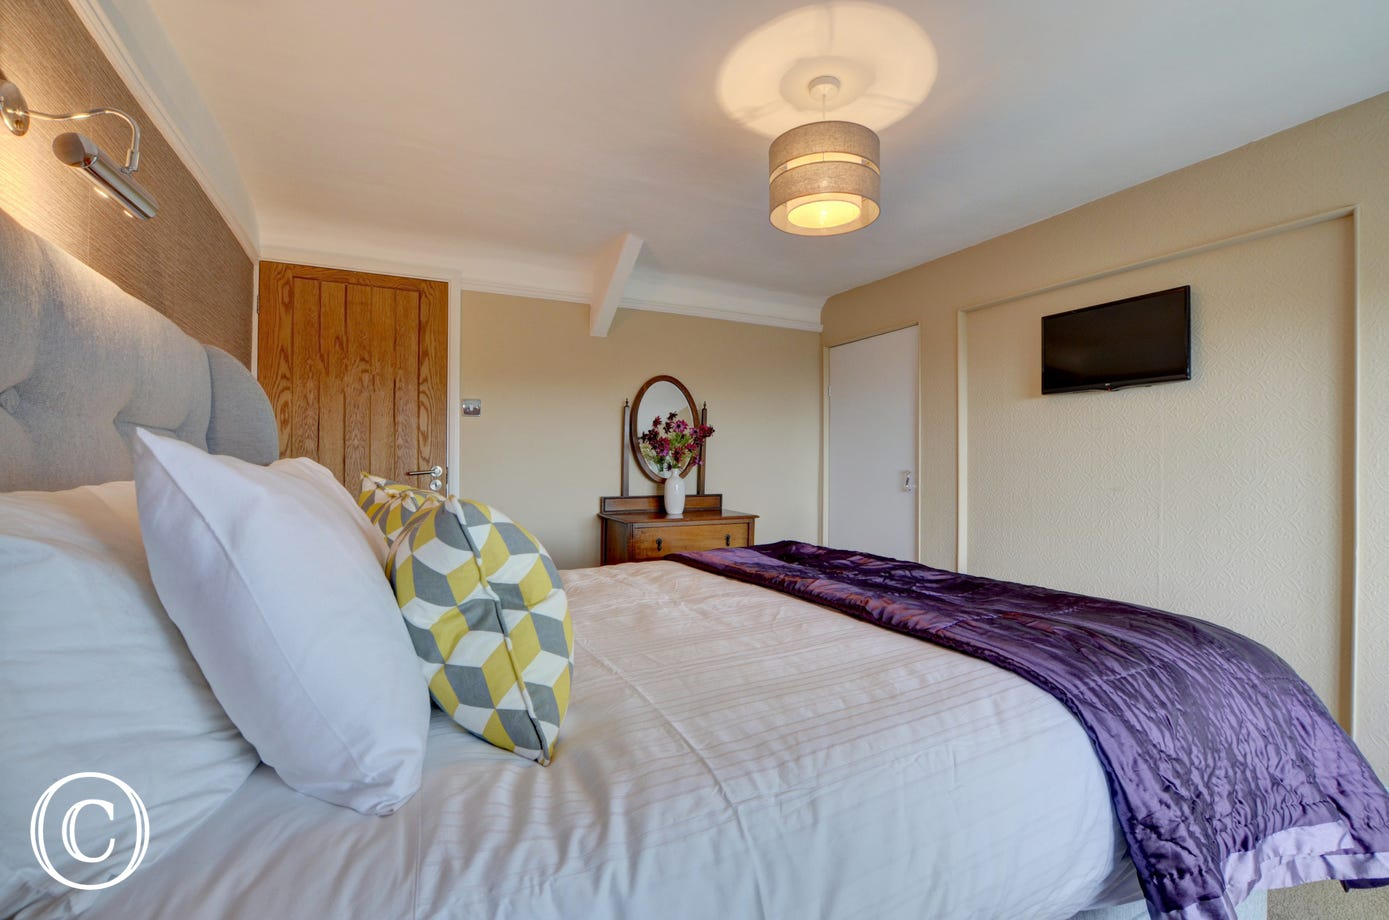 The smaller double bedroom has a TV, plenty of wardrobe space and wonderful views